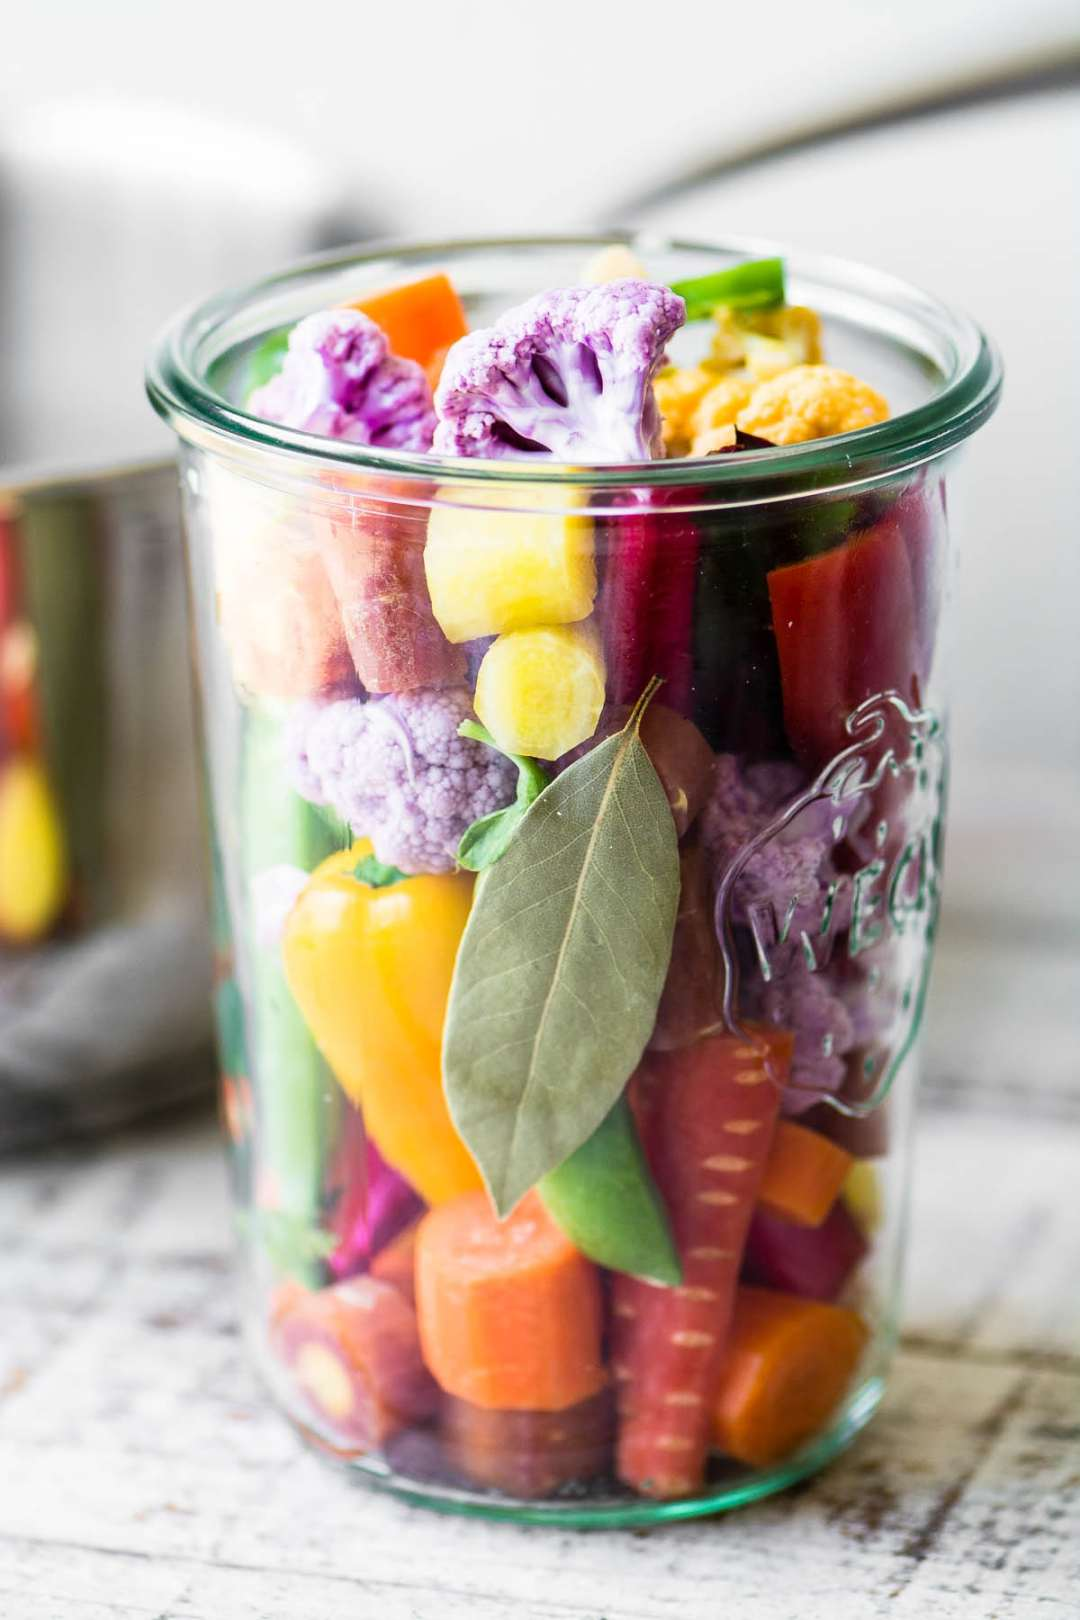 a large jar of quick rainbow giardiniera pickled vegetables